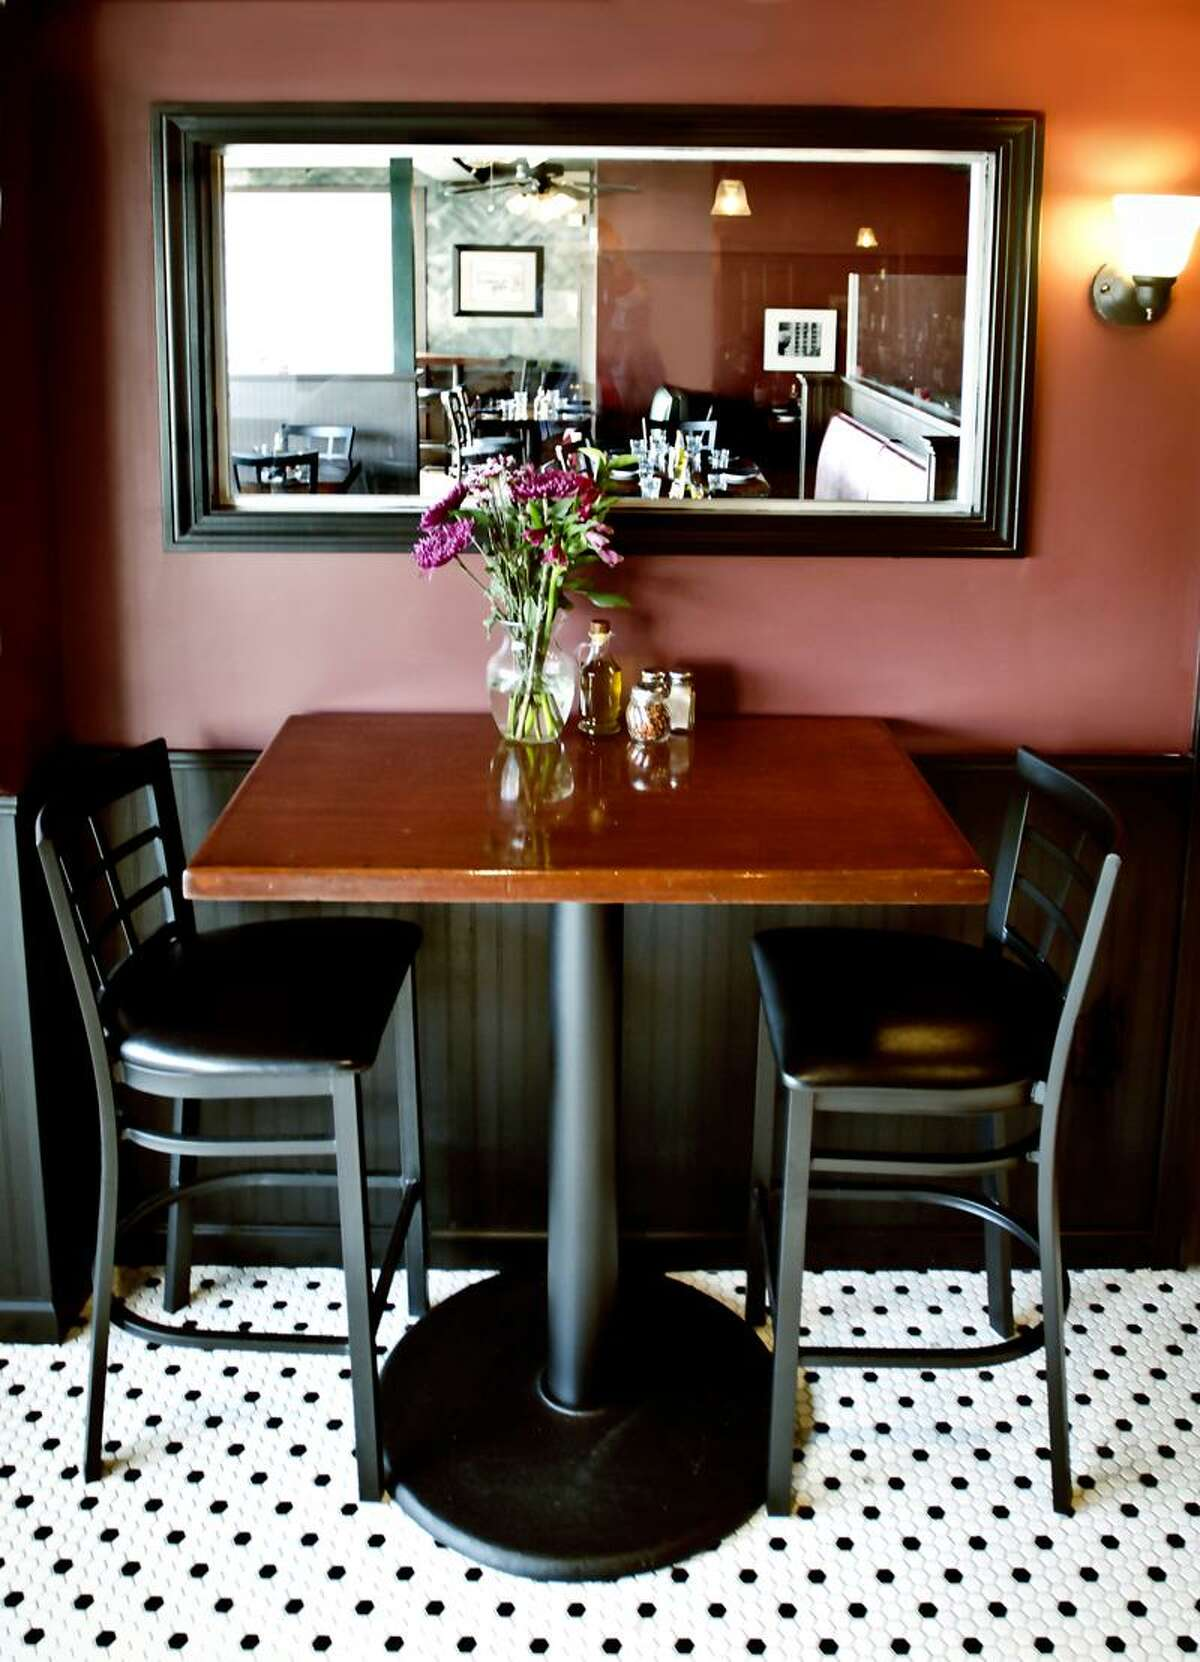 Hamden-Bistro table in the new bar at Cafe Amici. The restaurant is visible through the window at the table. Melanie Stengel/Register